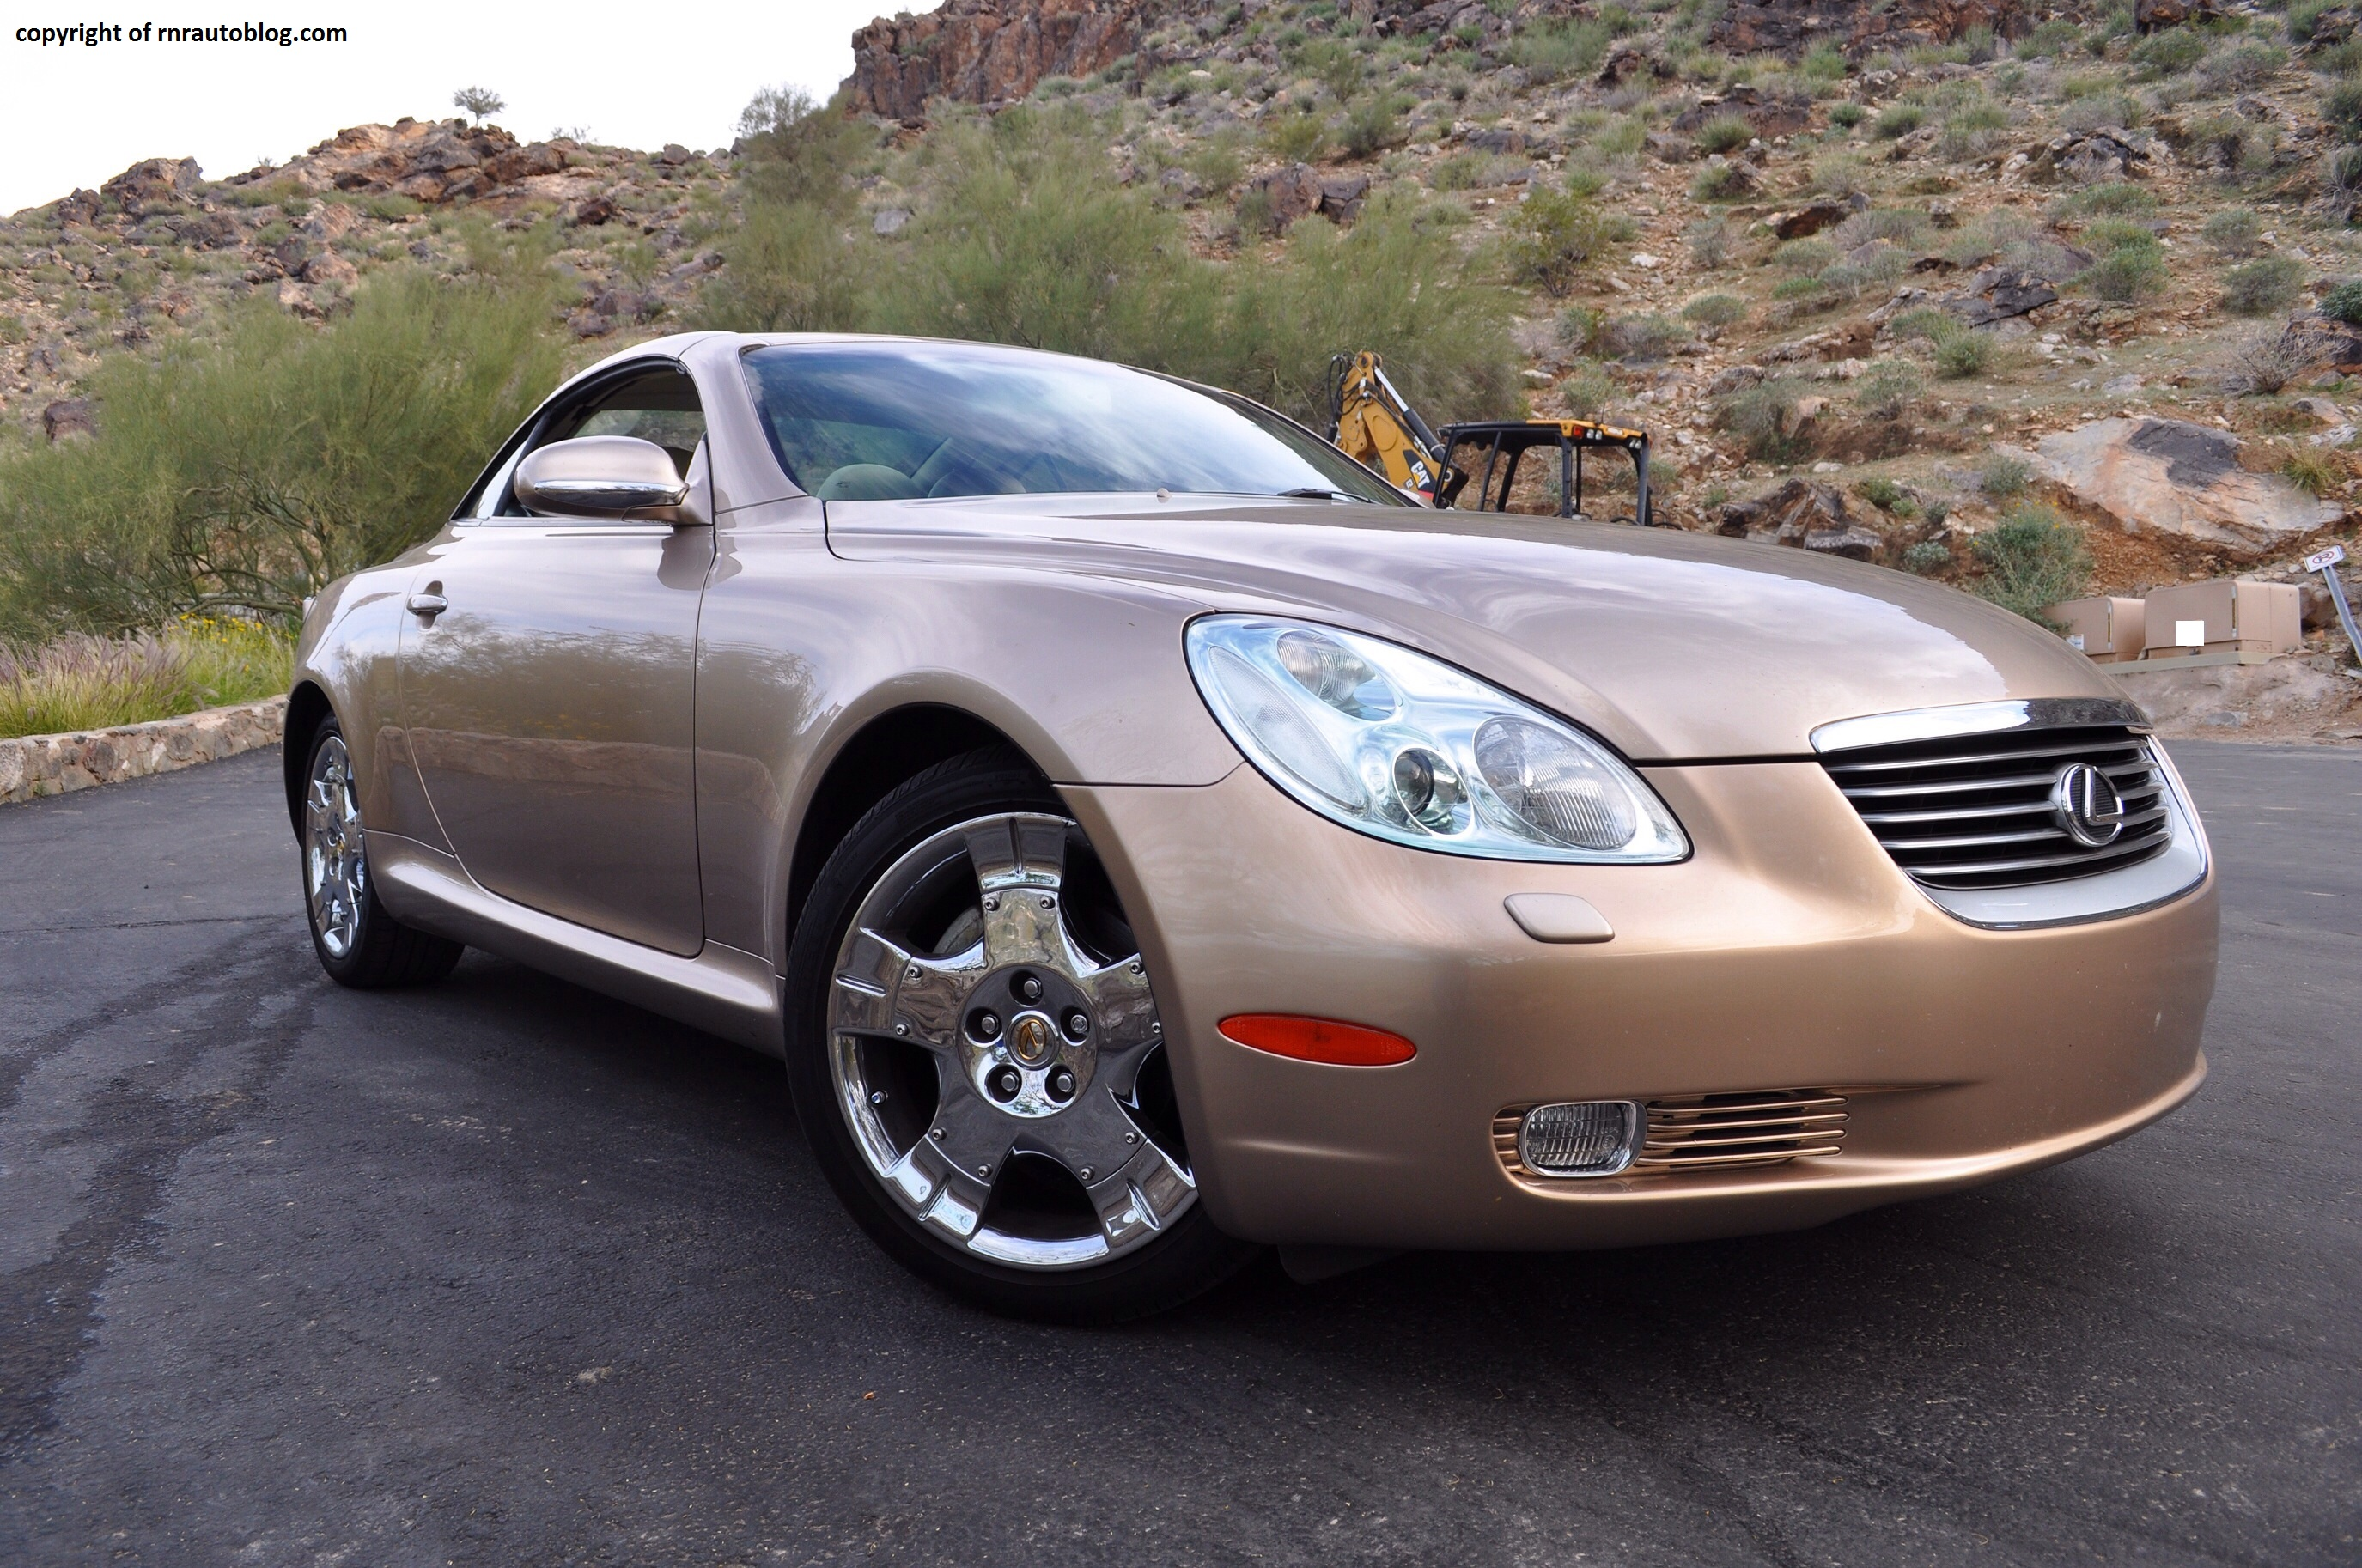 2006 Lexus SC430 Review